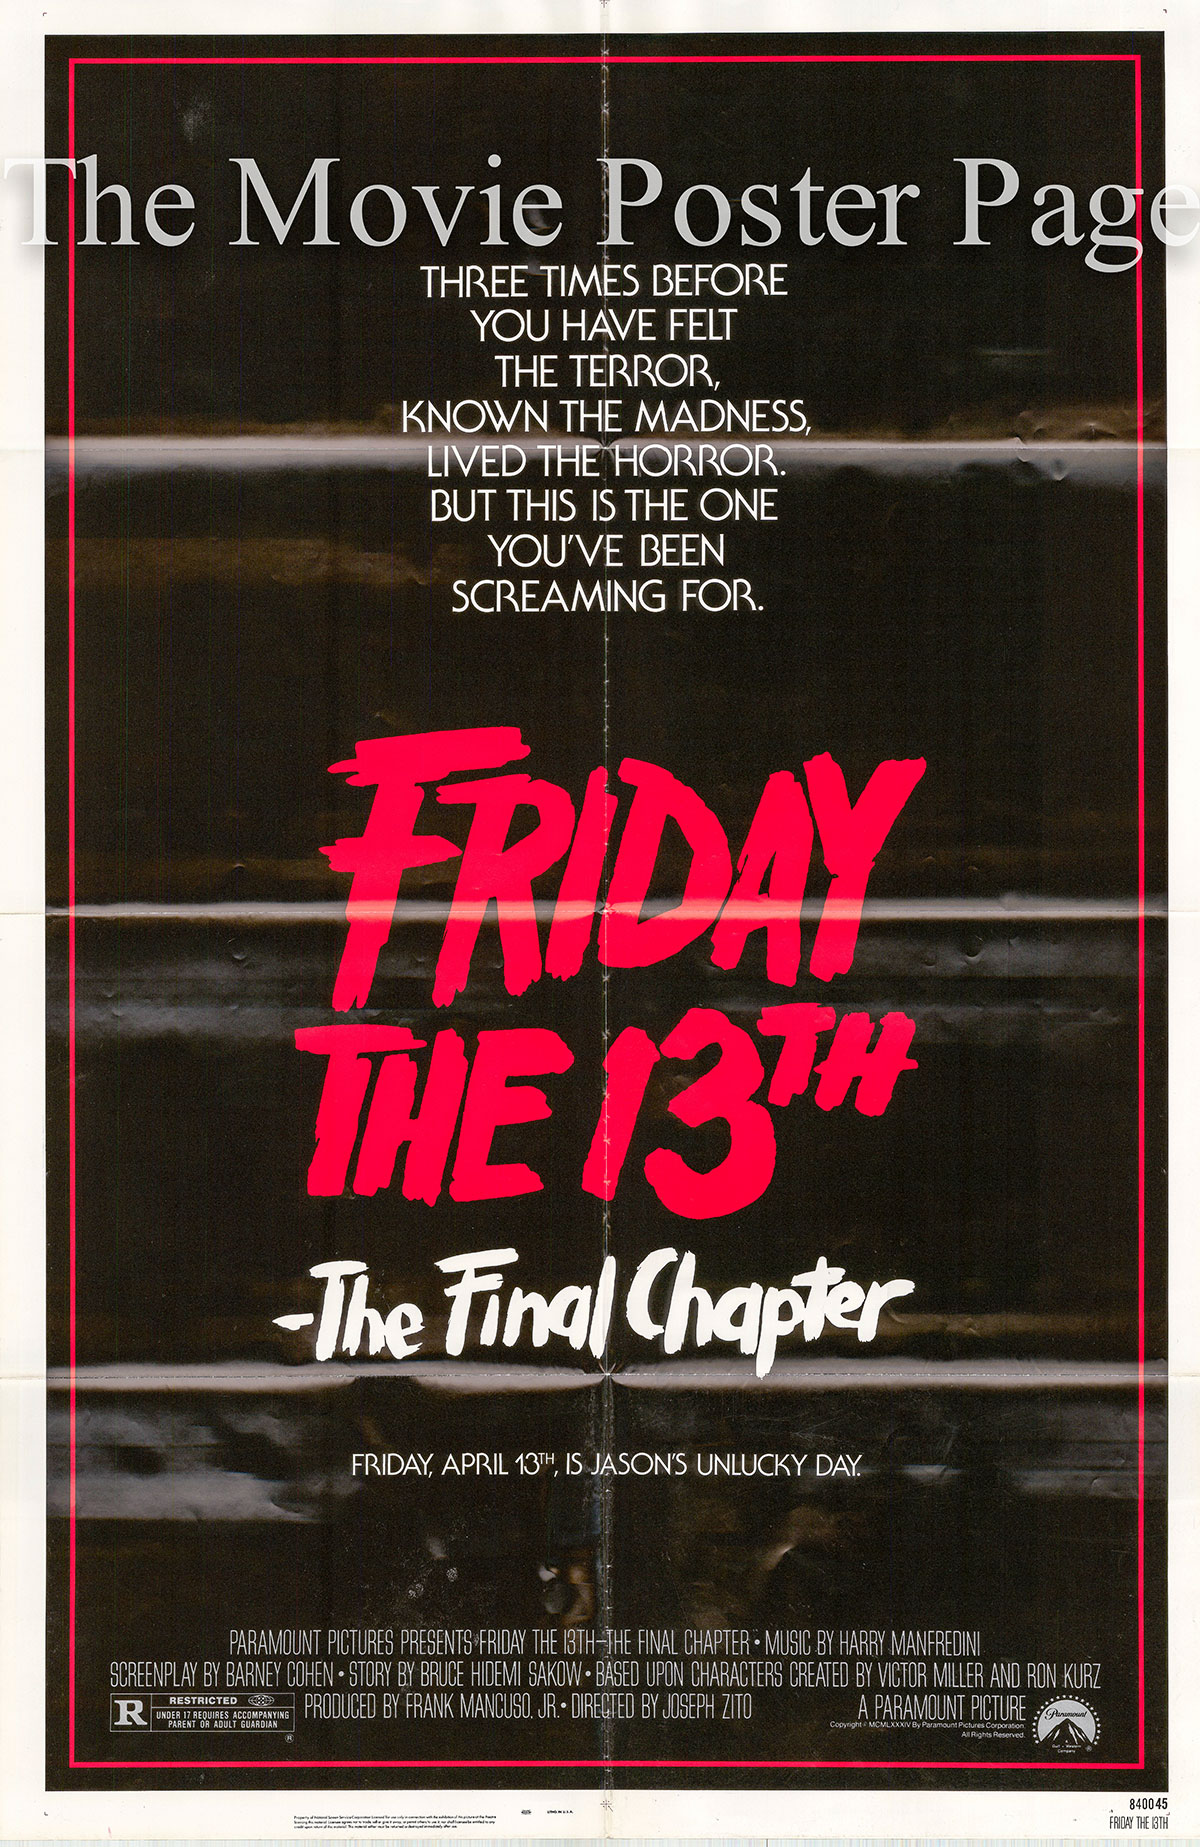 Pictured is a US one-sheet poster for the 1984 Joseph Zito film Friday the 13th: The Final Chapter starring Erich Anderson as Rob.